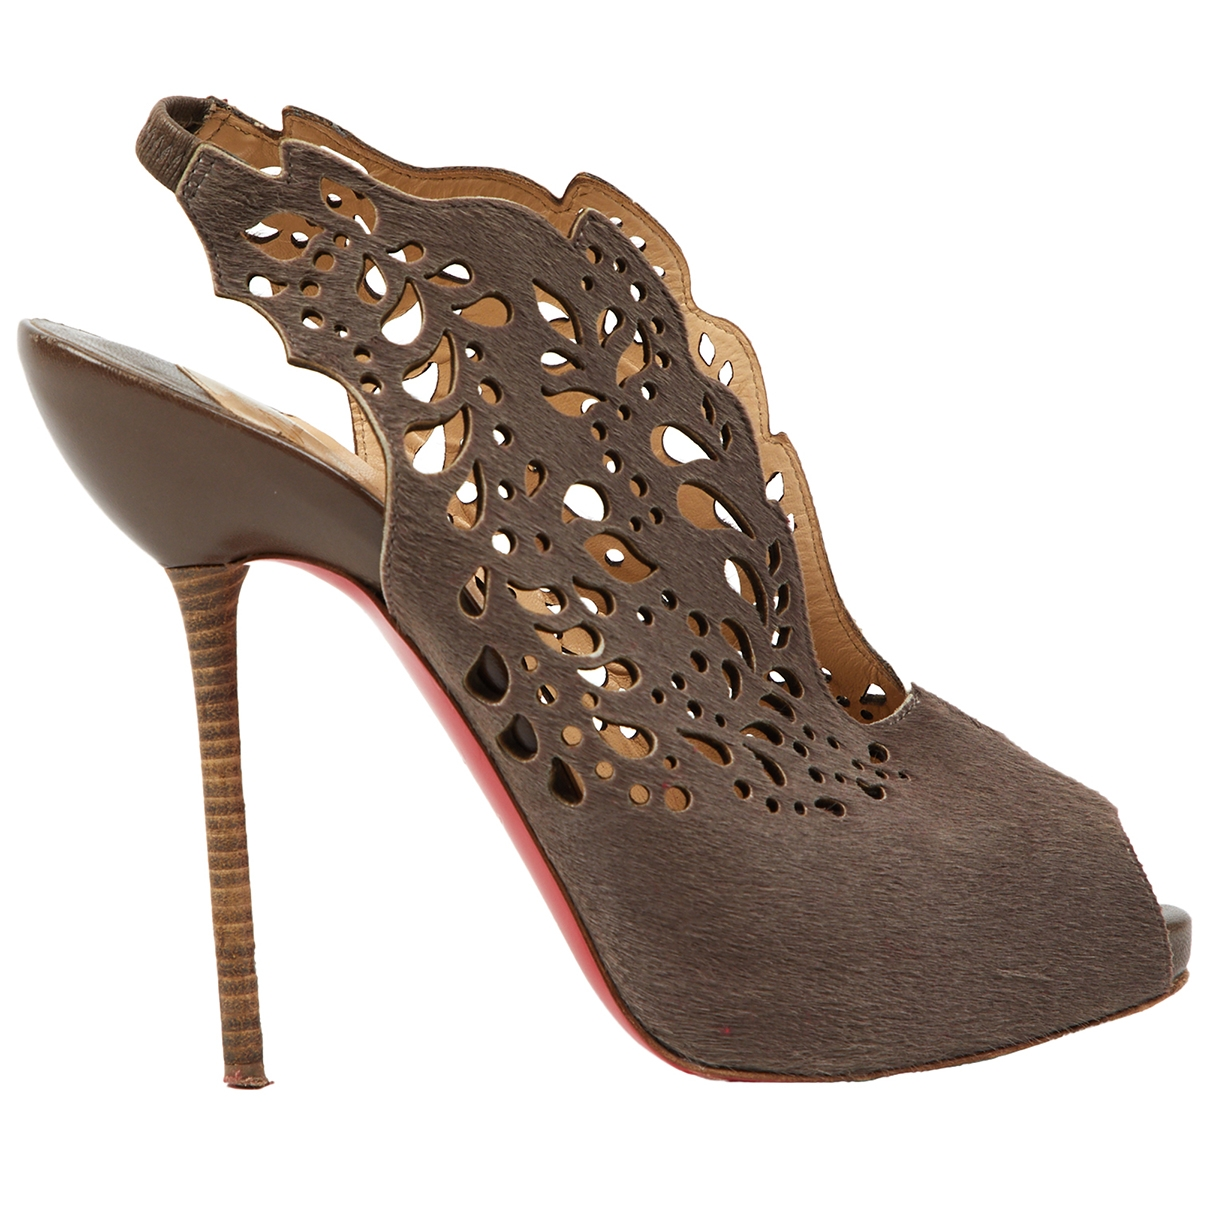 Christian Louboutin \N Pumps in  Braun Kalbsleder in Pony-Optik